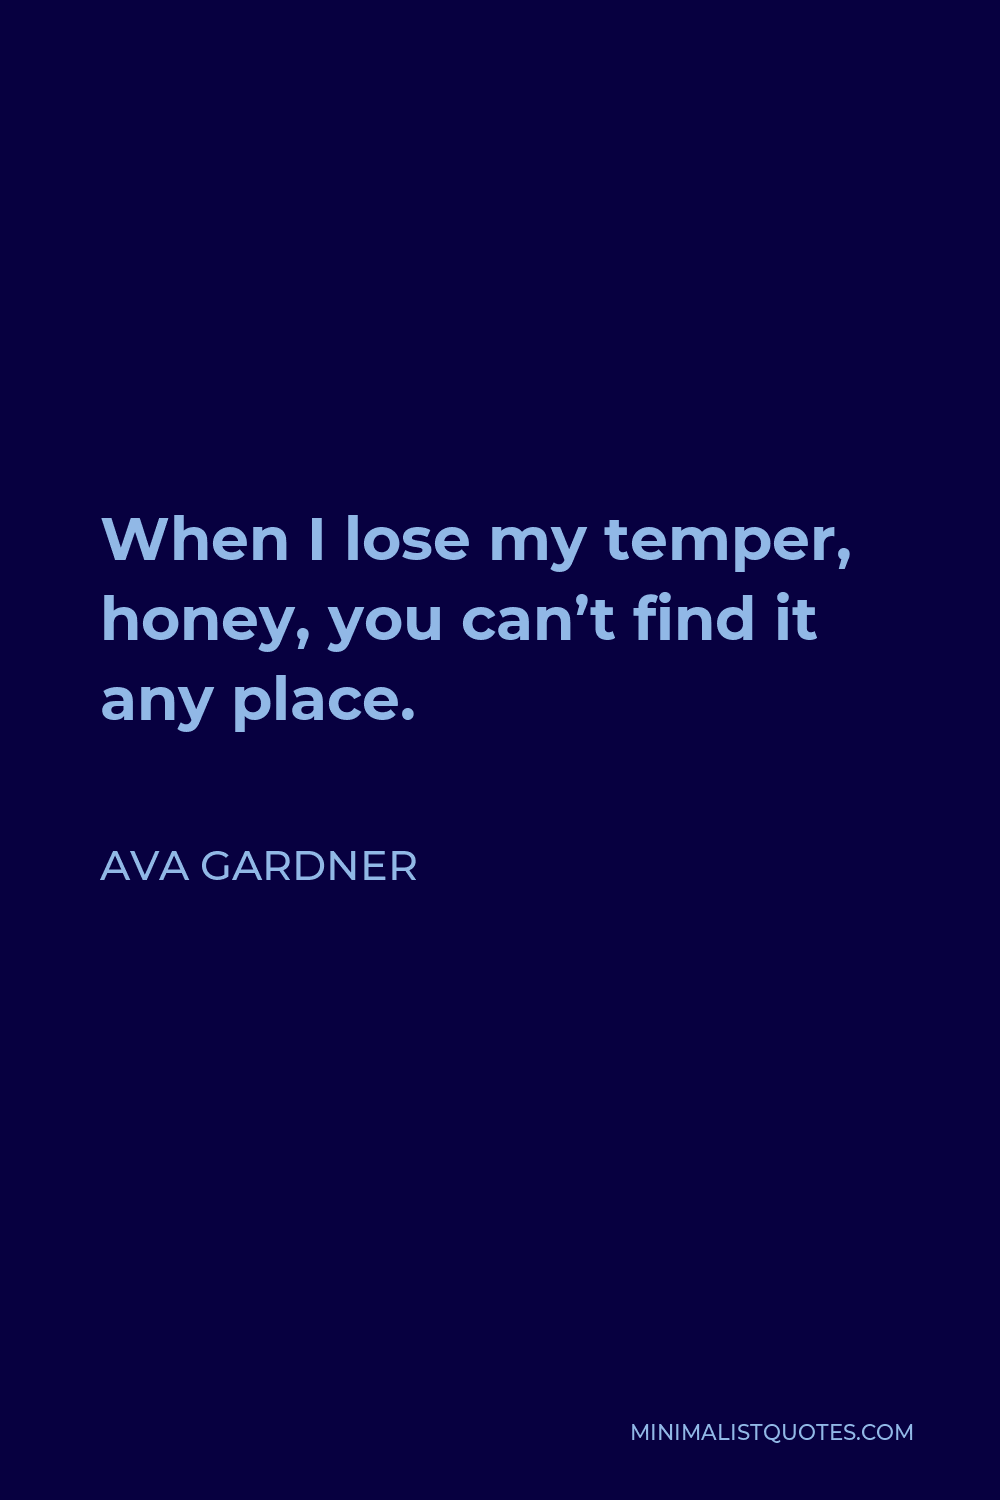 Ava Gardner Quote - When I lose my temper, honey, you can't find it any place.